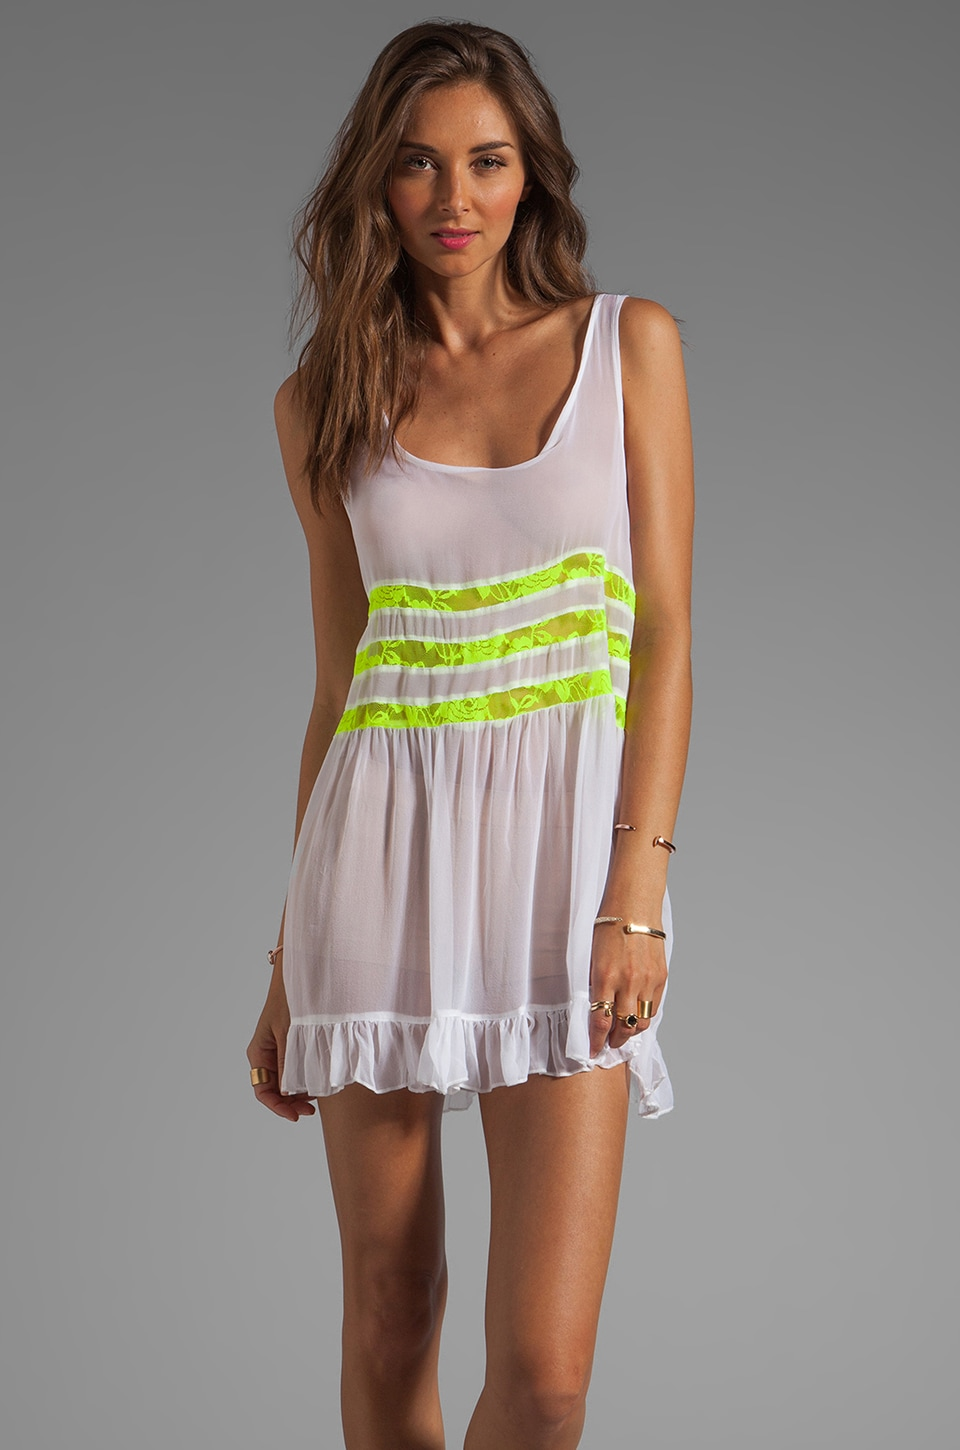 Gypsy Junkies Seville Tunic in White/Yellow